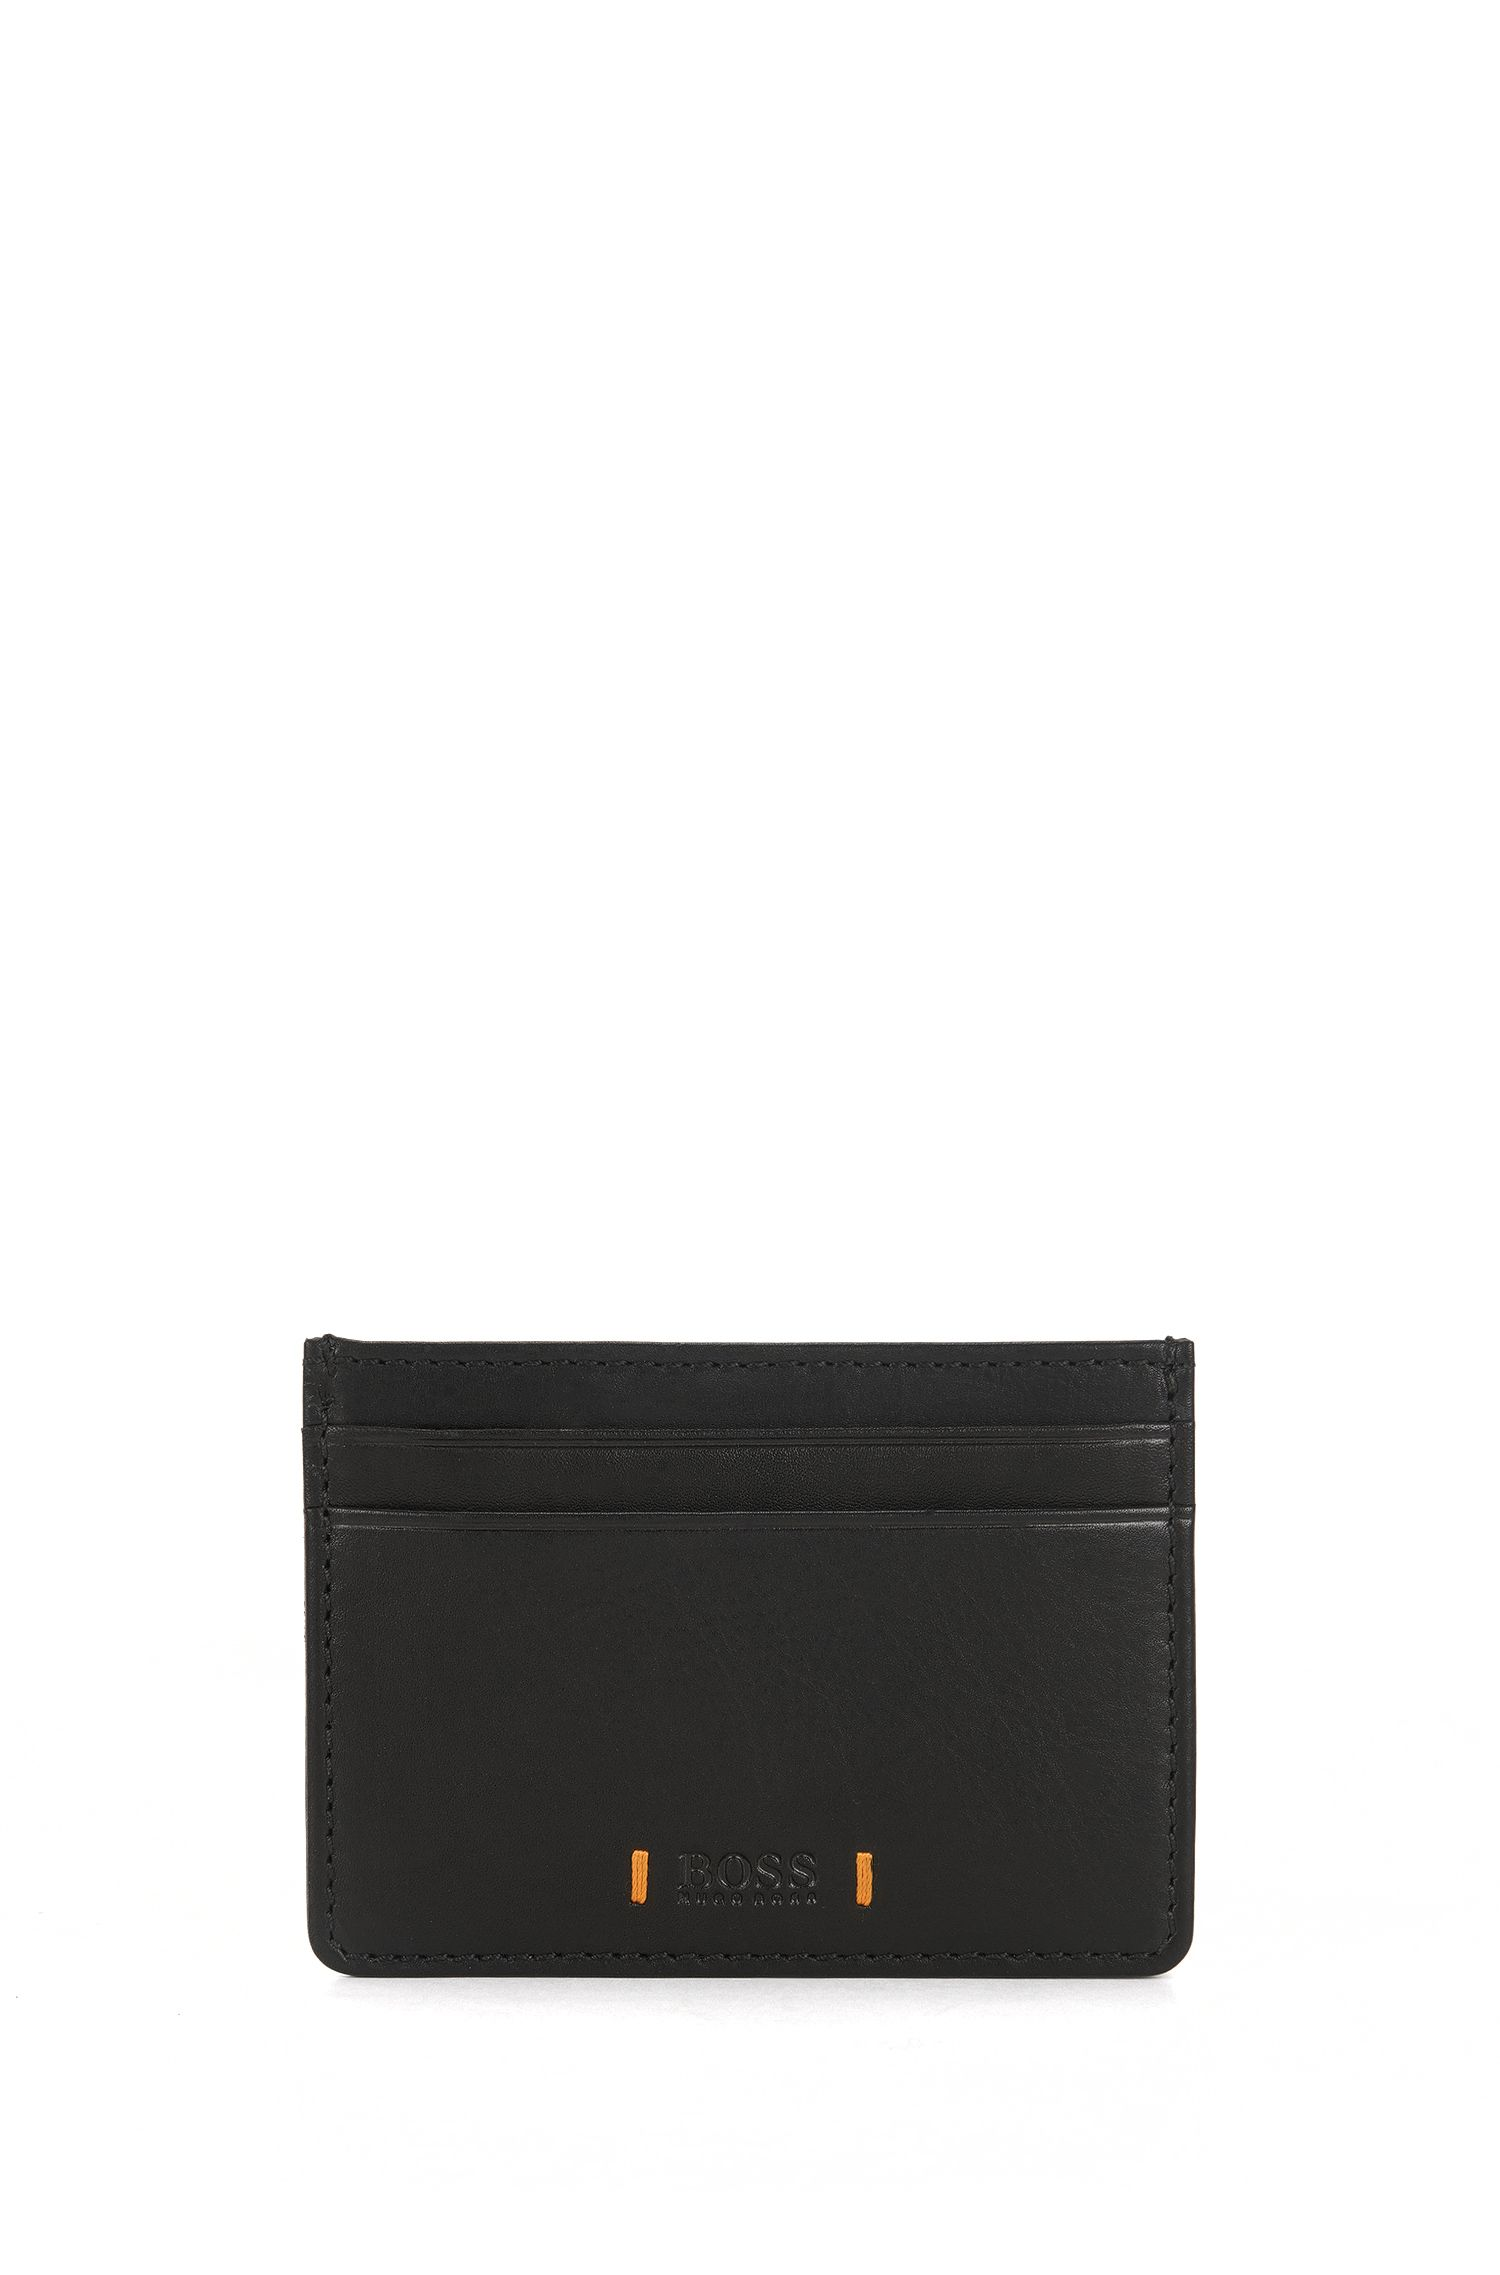 Leather card holder with signature stitching